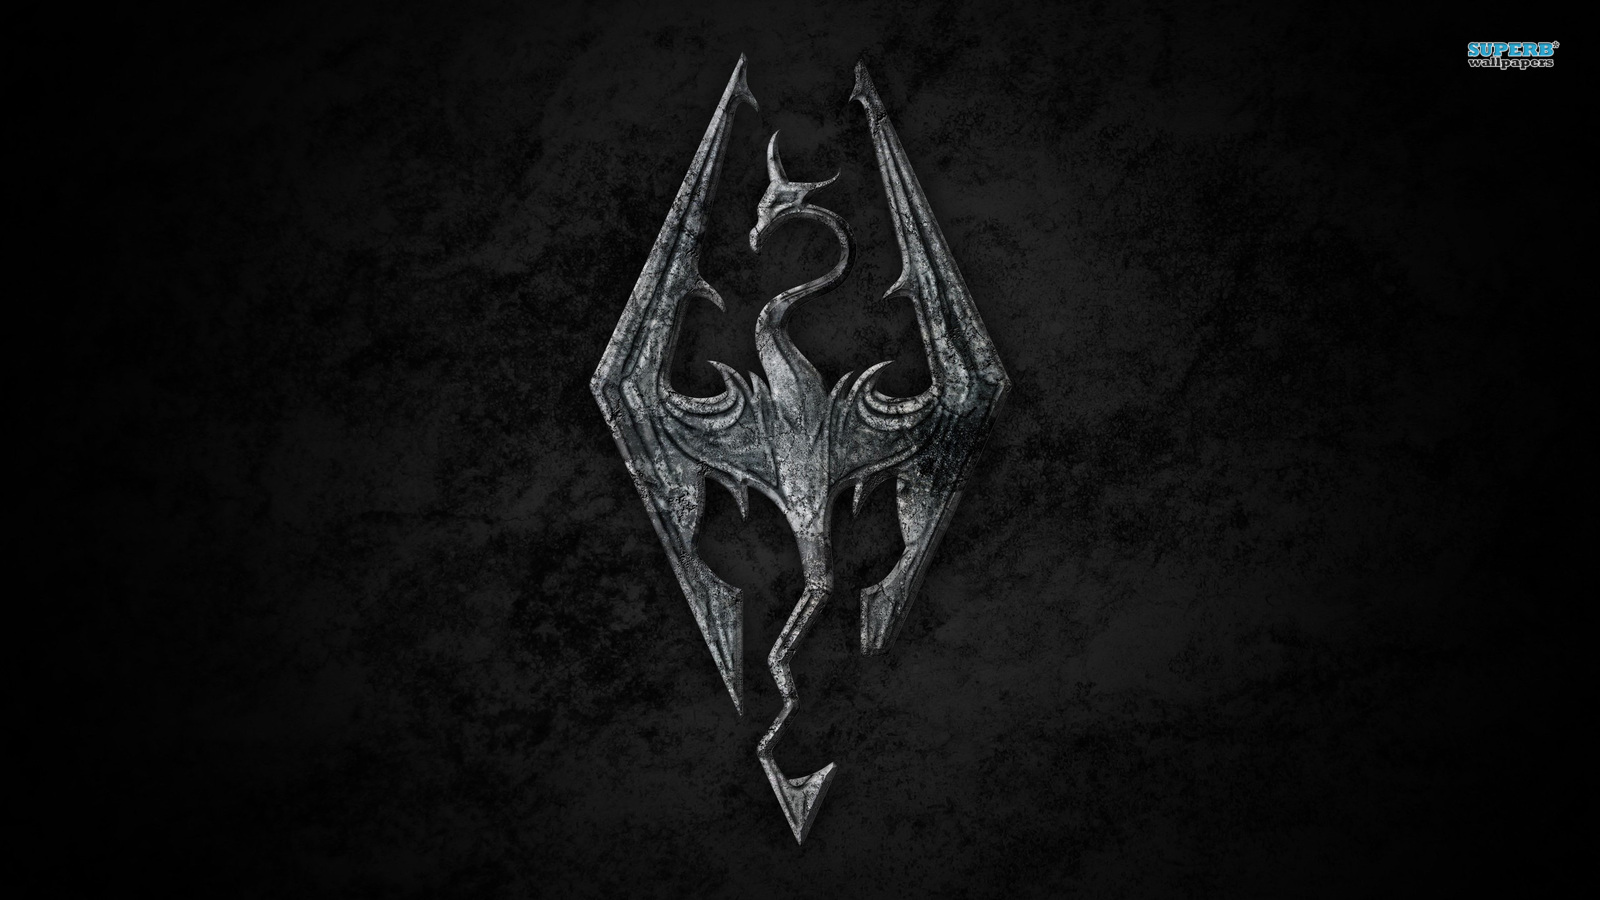 elder scrolls v : skyrim images skyrim hd wallpaper and background